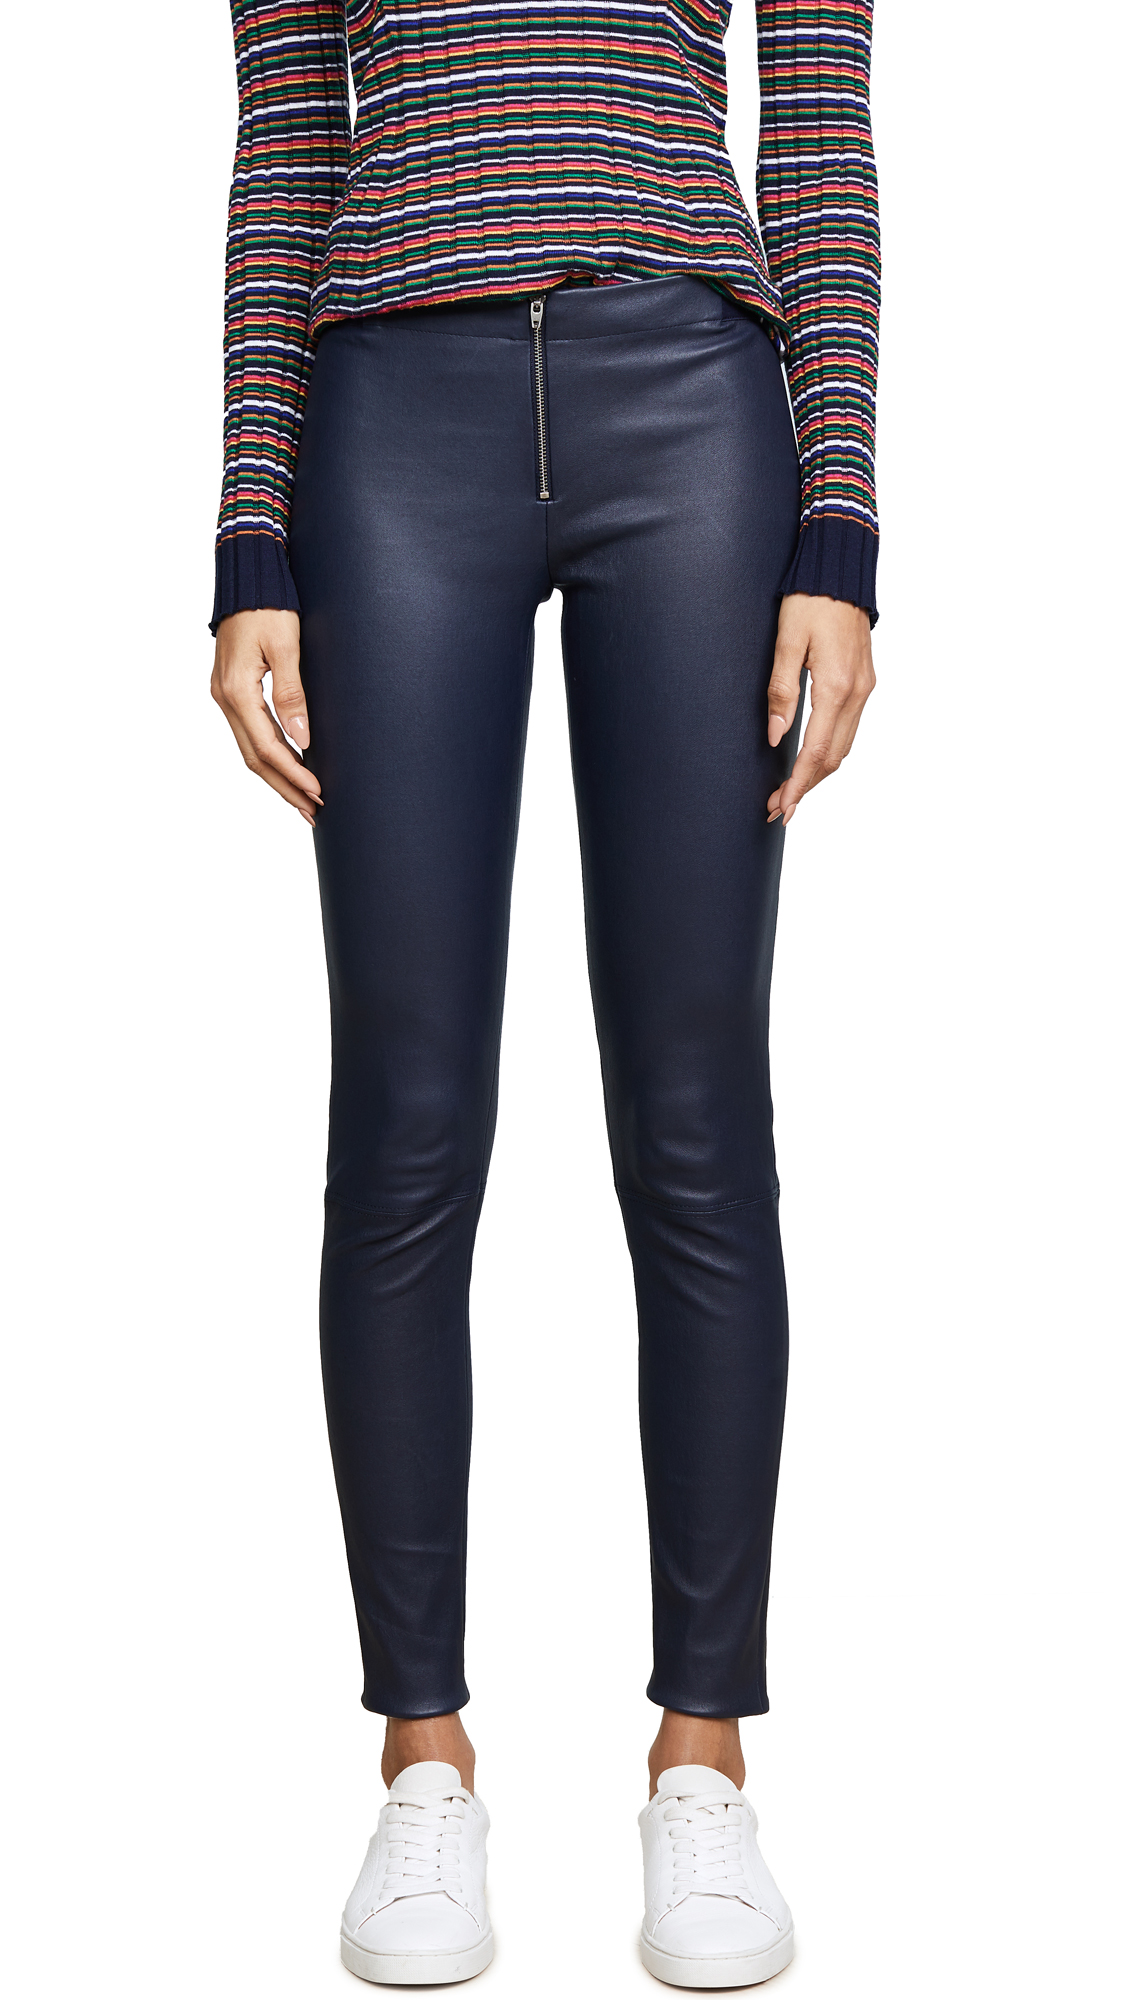 alice + olivia Zip Front Leather Leggings - Navy